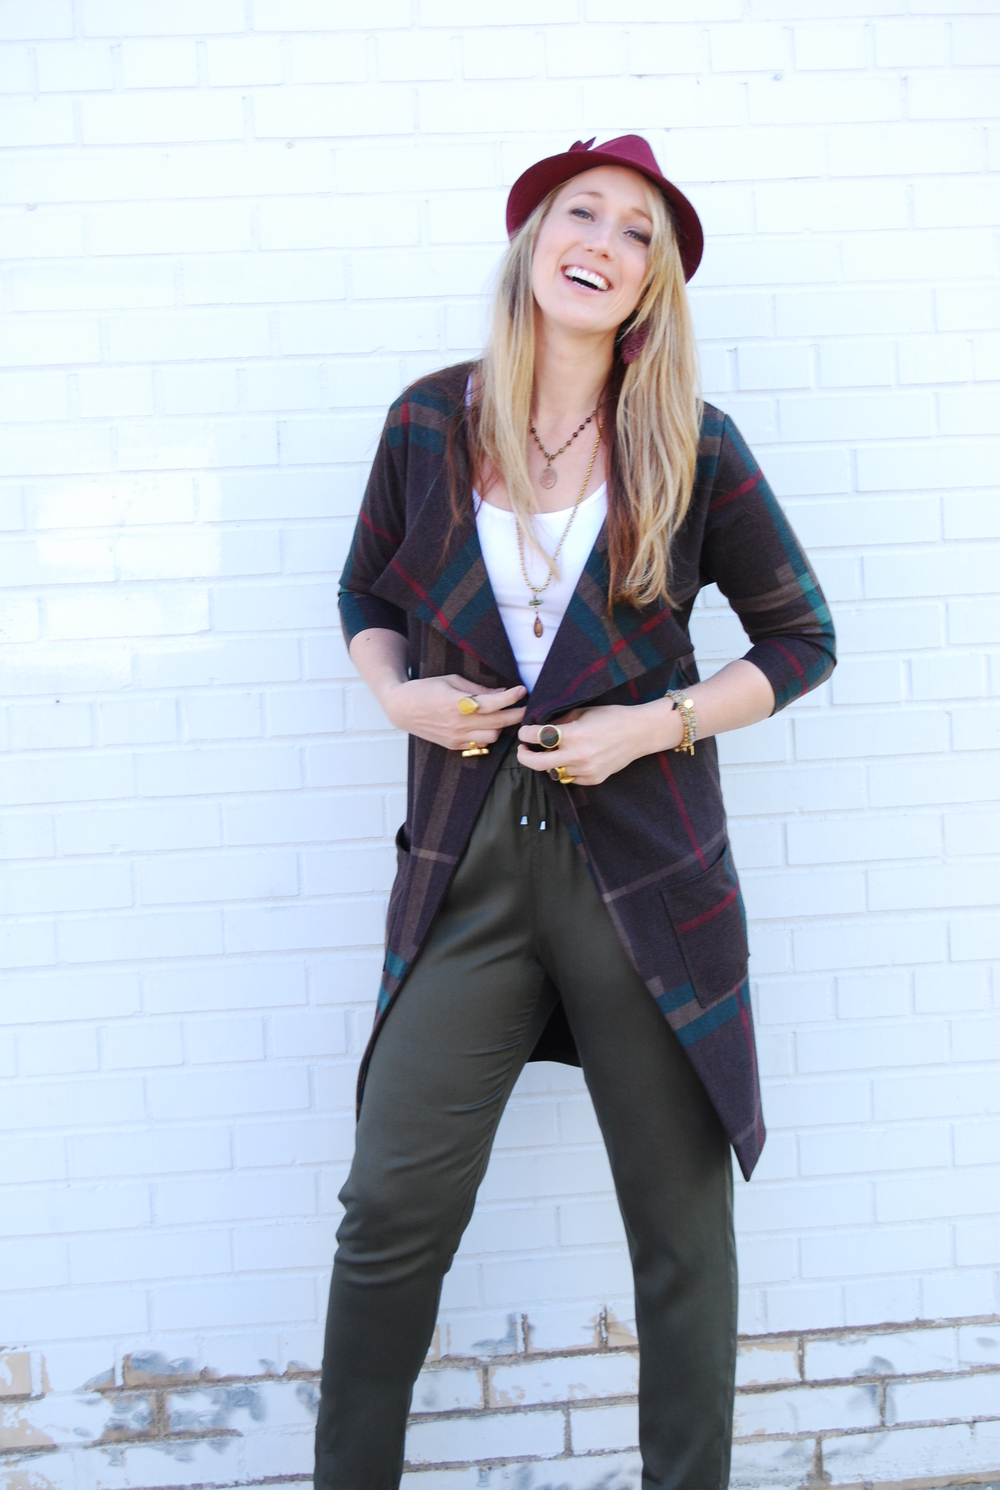 Plaid Cardigan $78 // Jogger pants olive green $68 // Basic tank $13 // Hat $42 // Litany Necklaces // Tess + Tricia wrap bracelets $36 // Gold + Stone rings $24